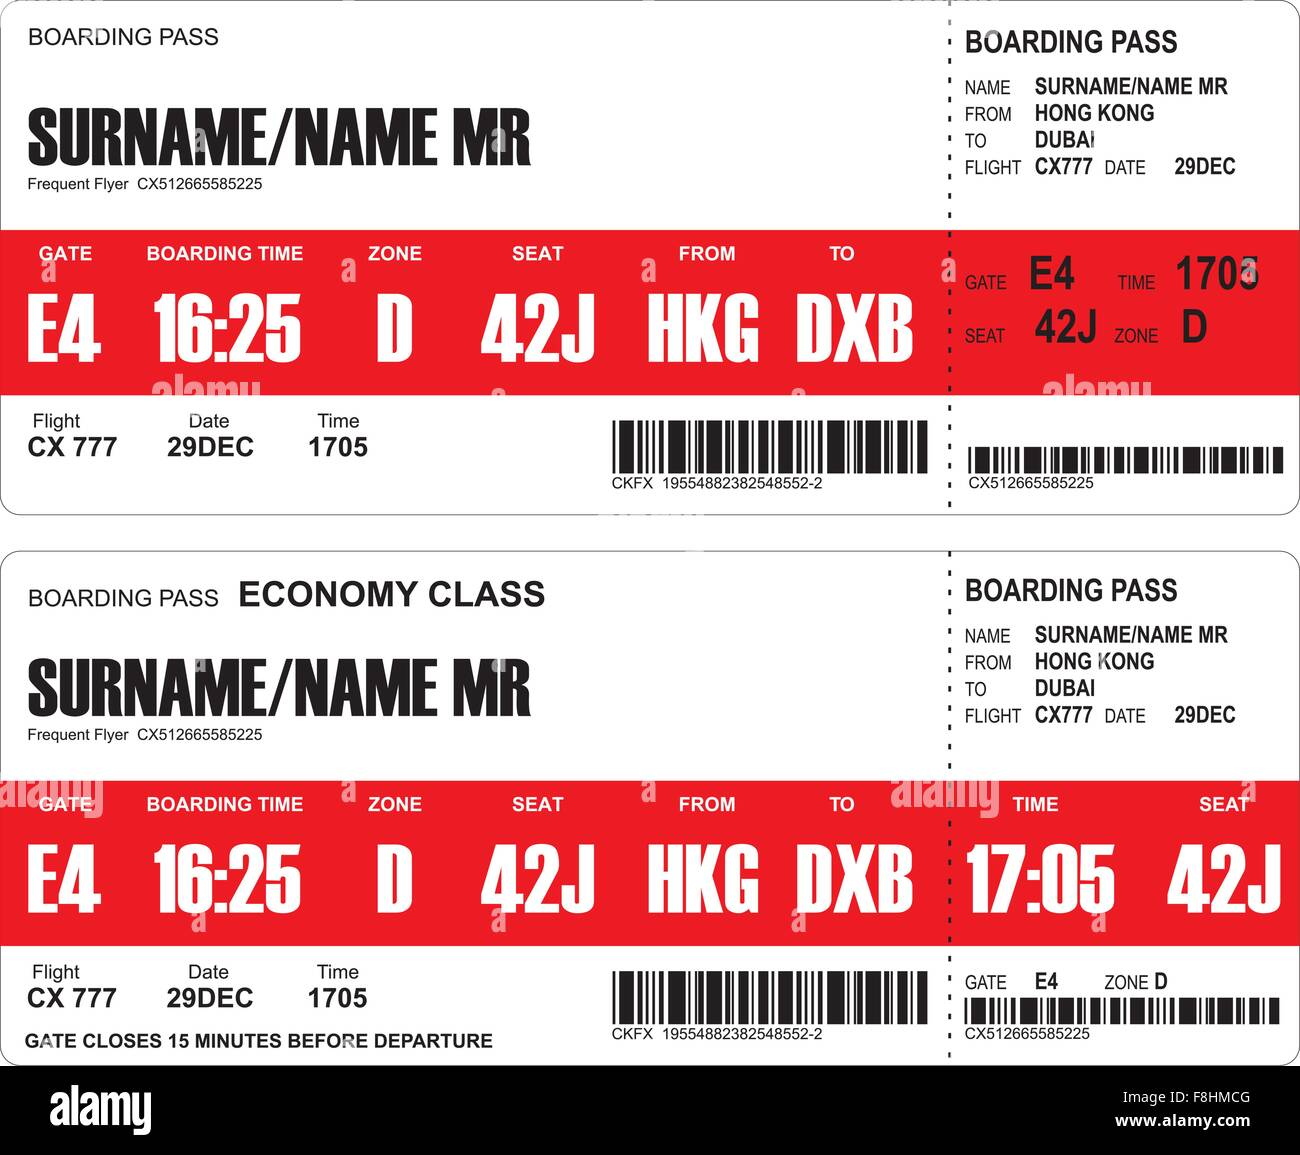 e06881ab287 Vector image of airline boarding pass tickets with barcode - Stock Image